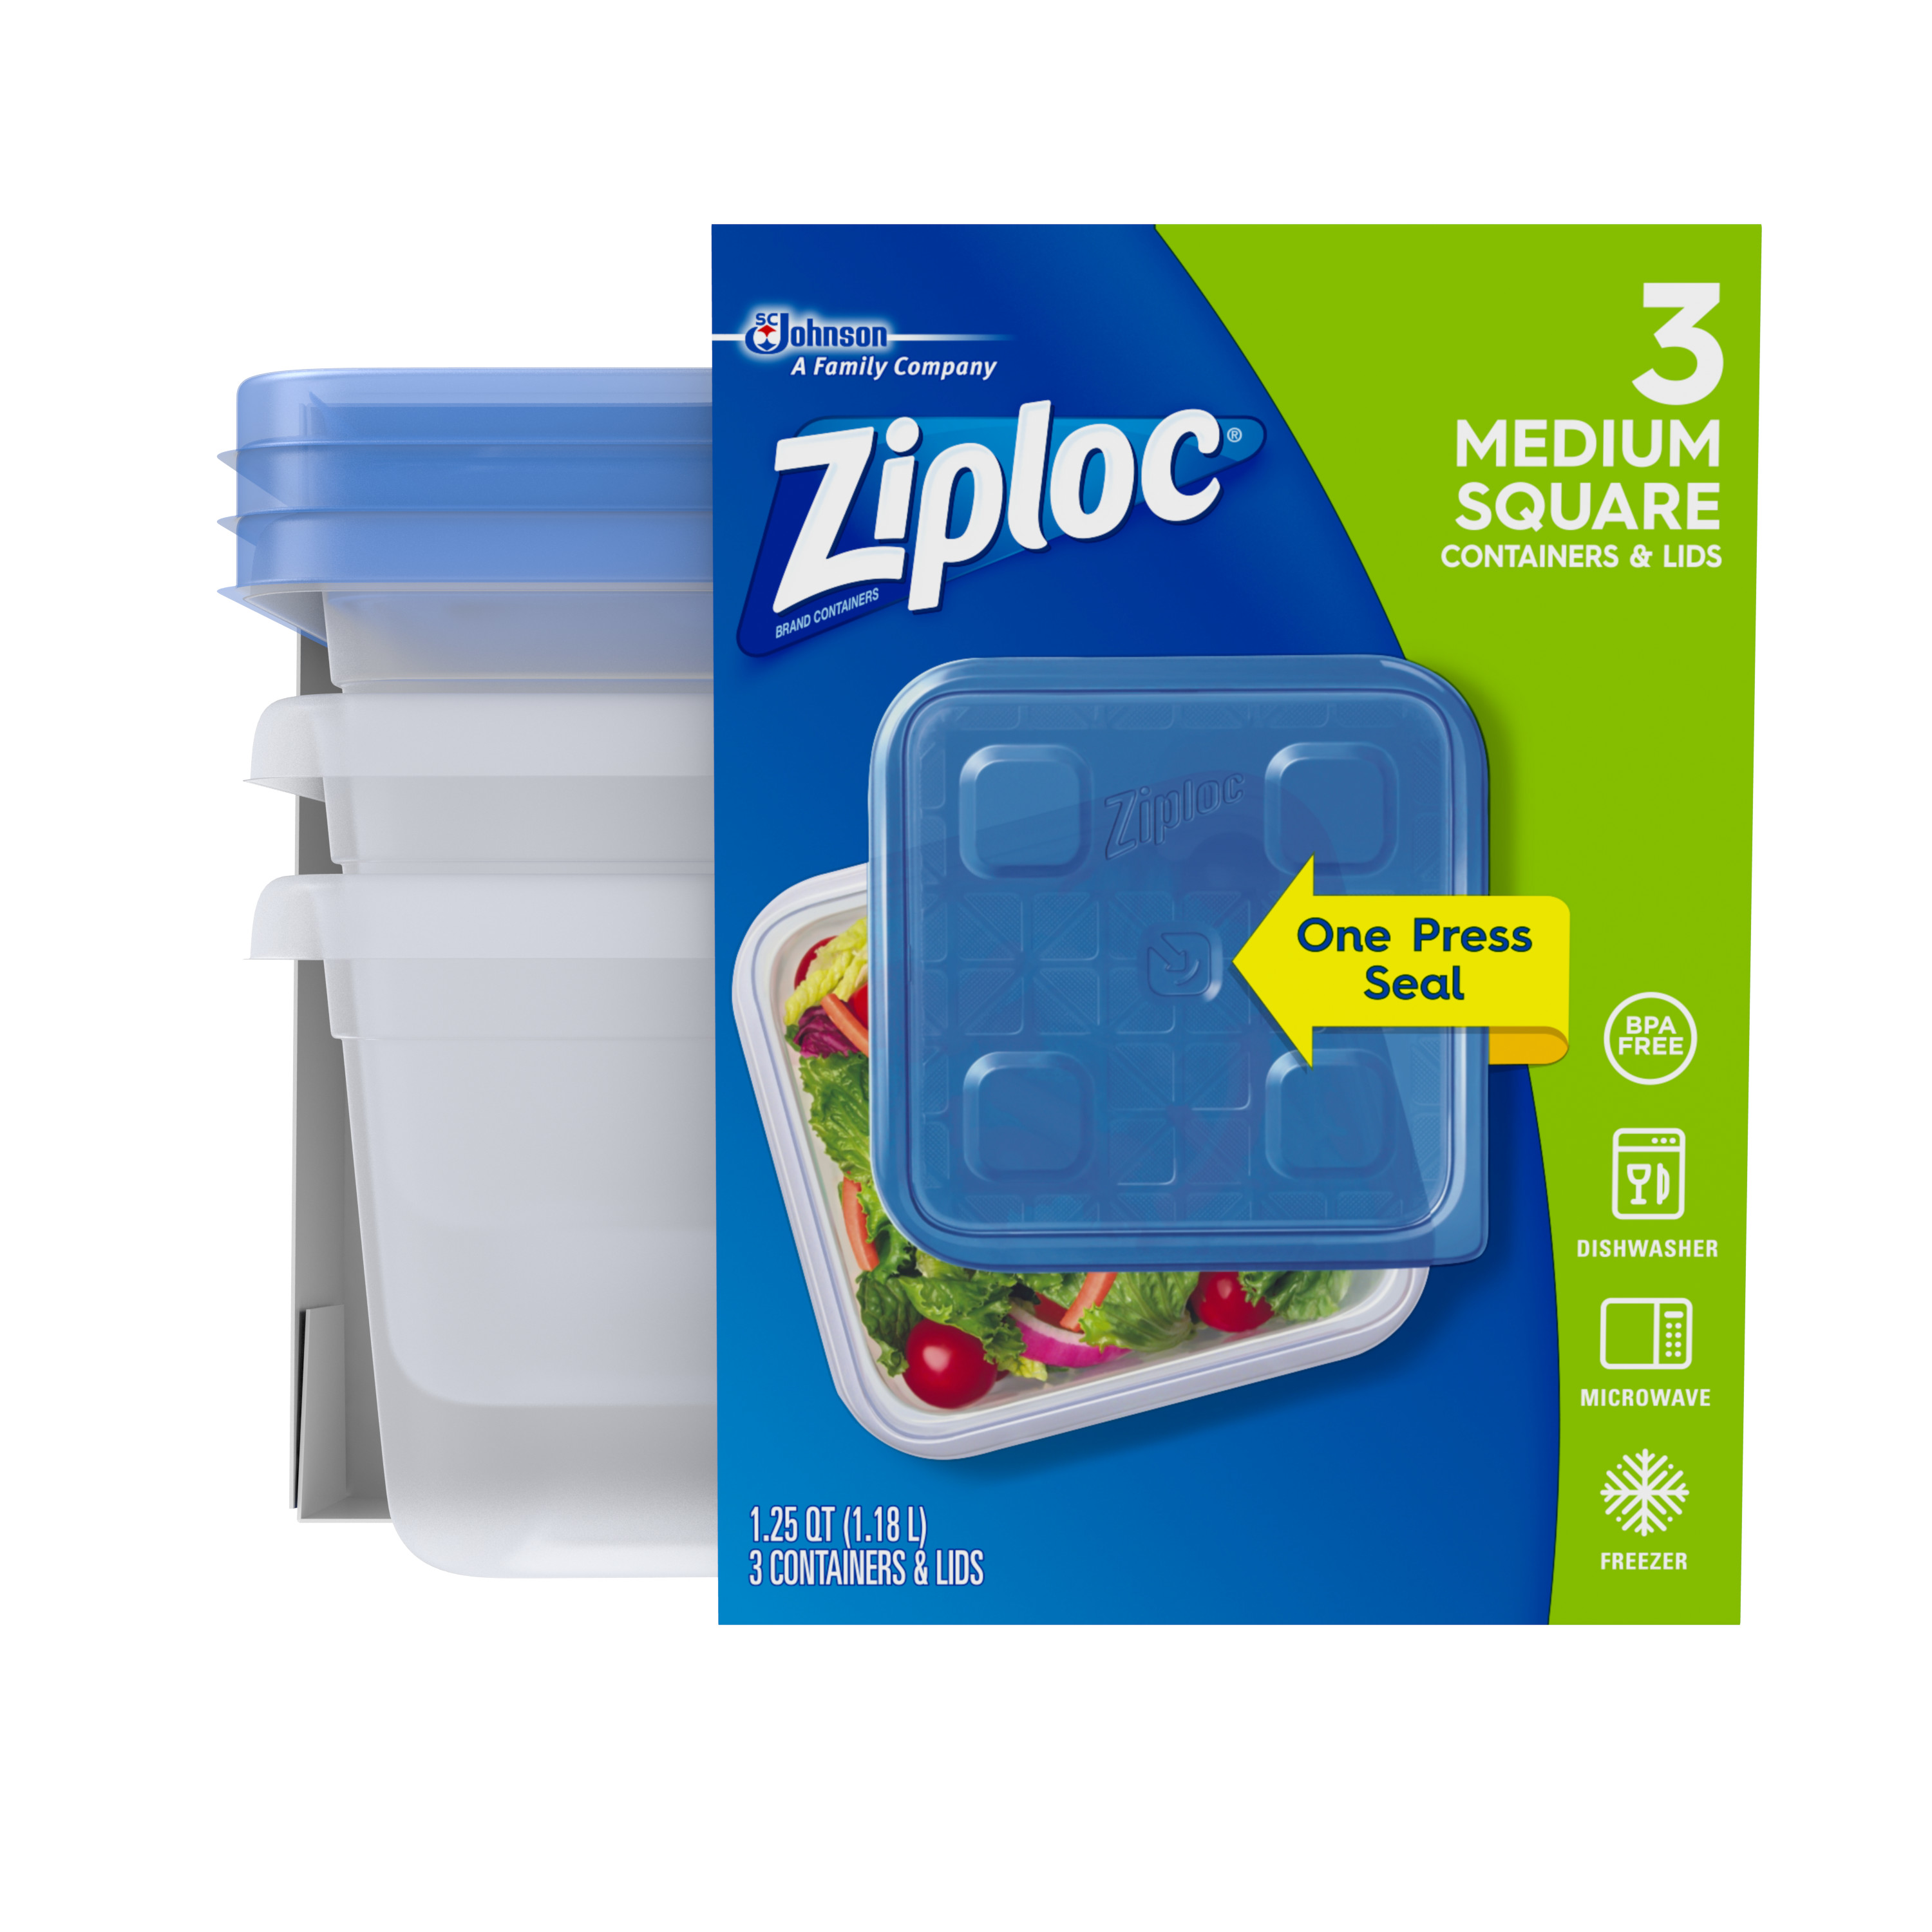 Ziploc Container with One Press Seal, Medium Square, 3 count